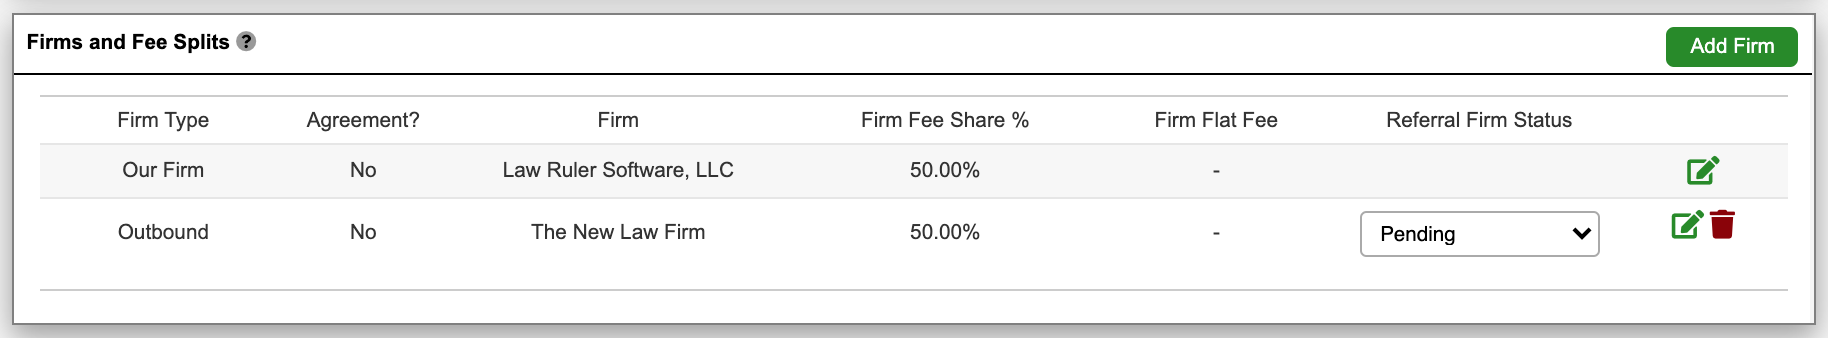 firms_and_fee_splits_section.png